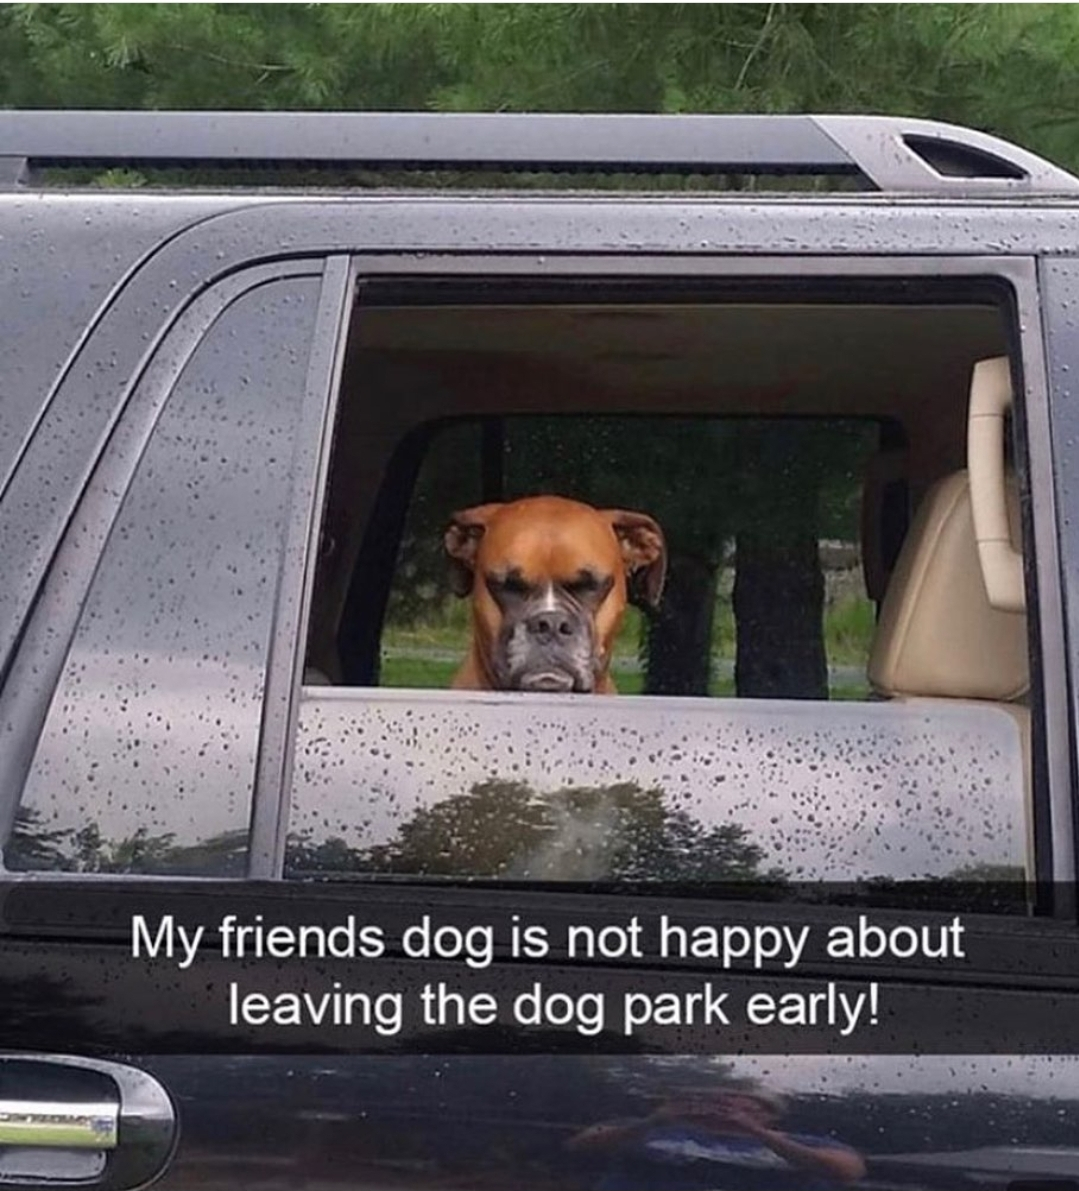 My friend's dog is not happy about leaving the dog park early!